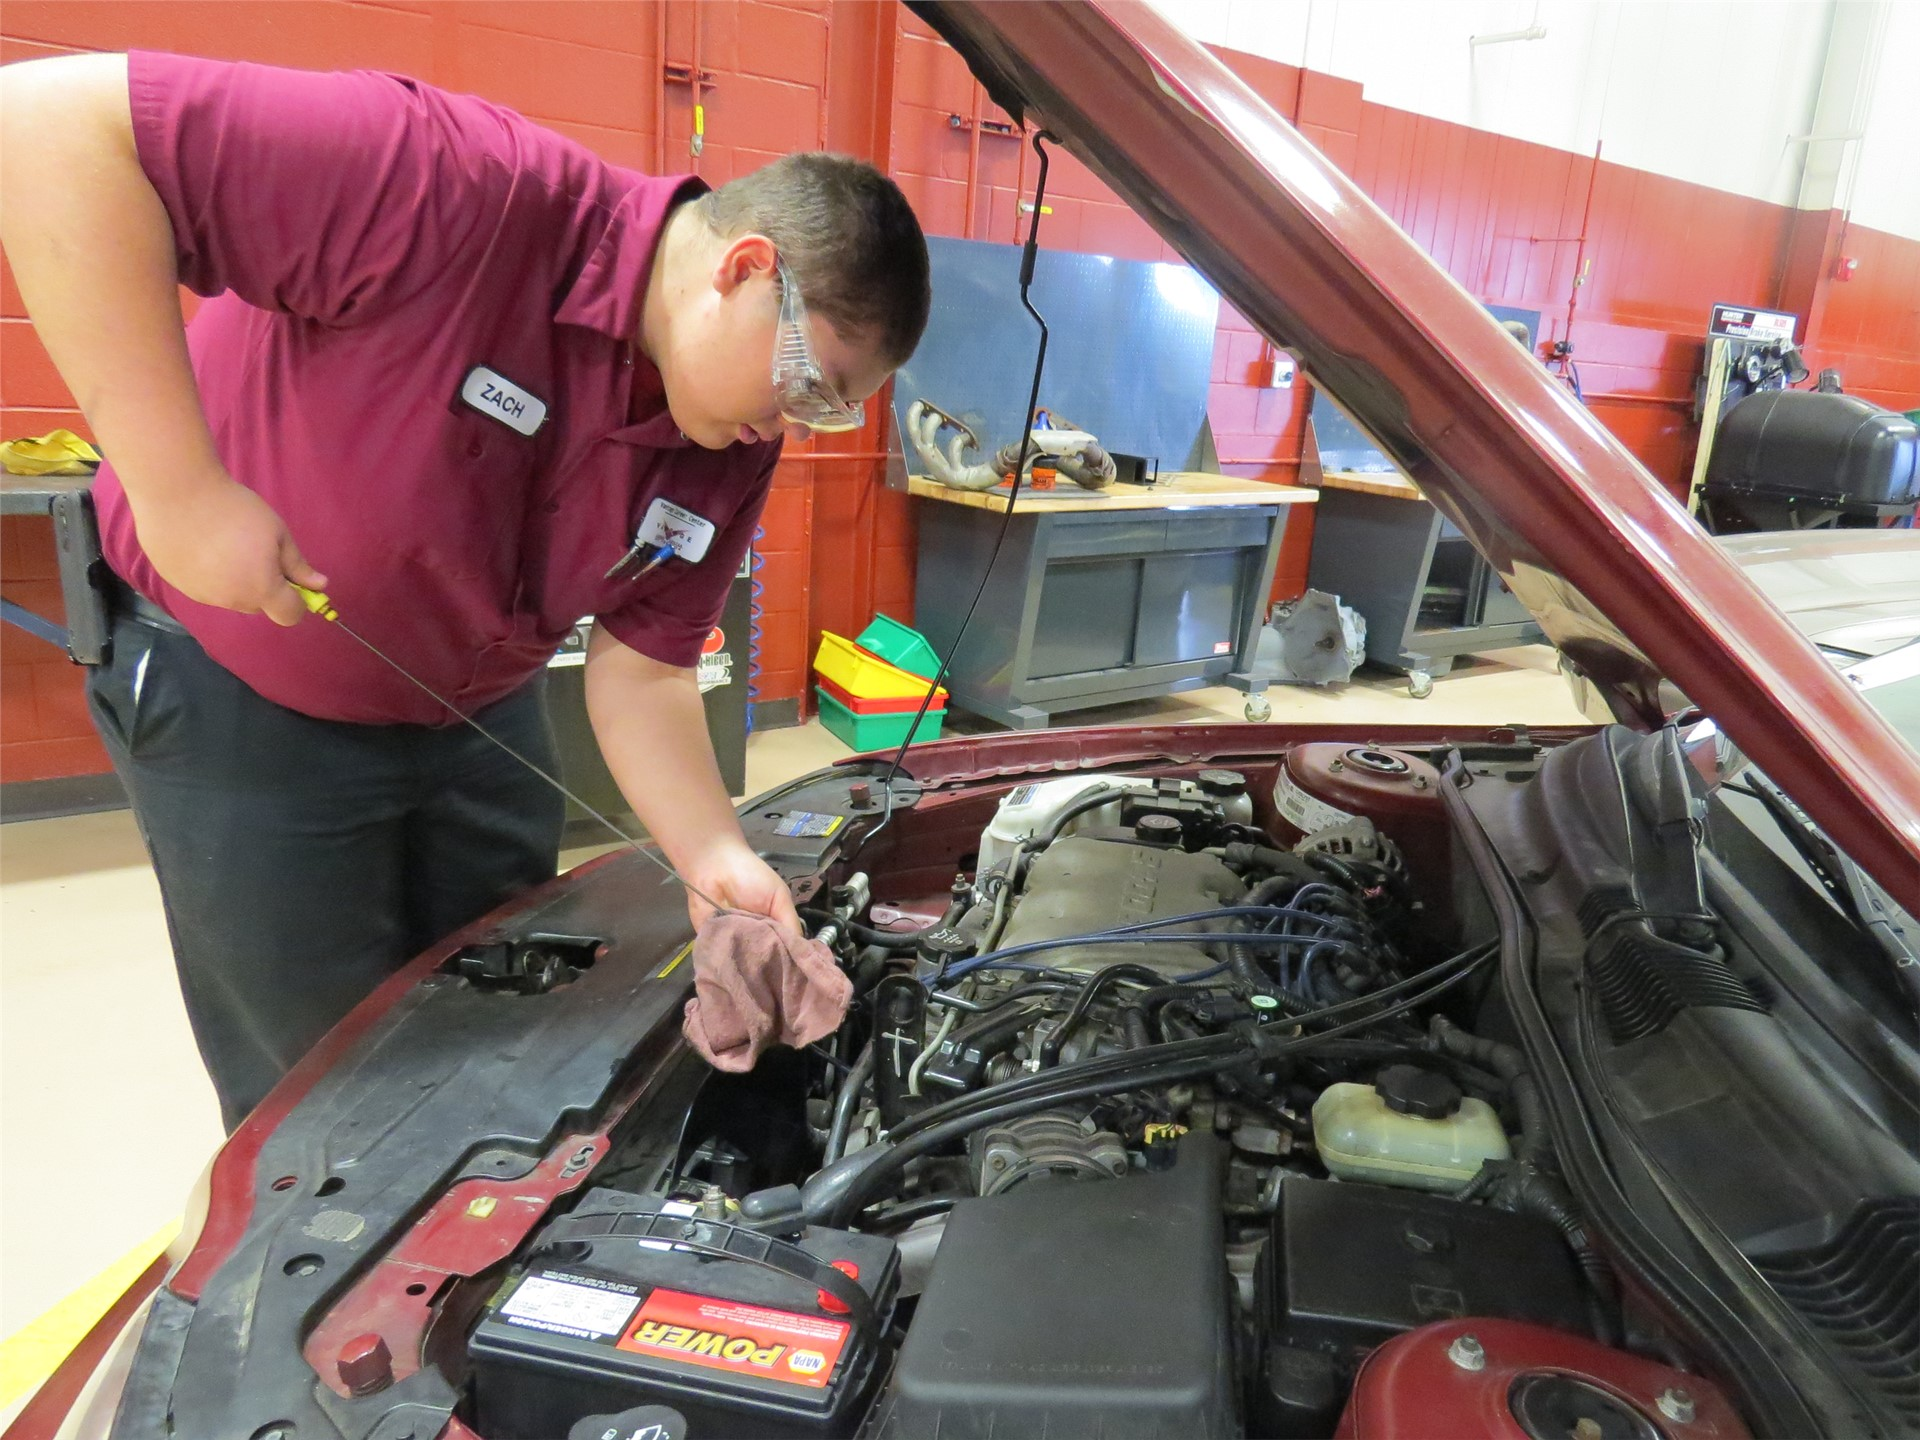 Male Auto Tech student checking oil under the hood of a car